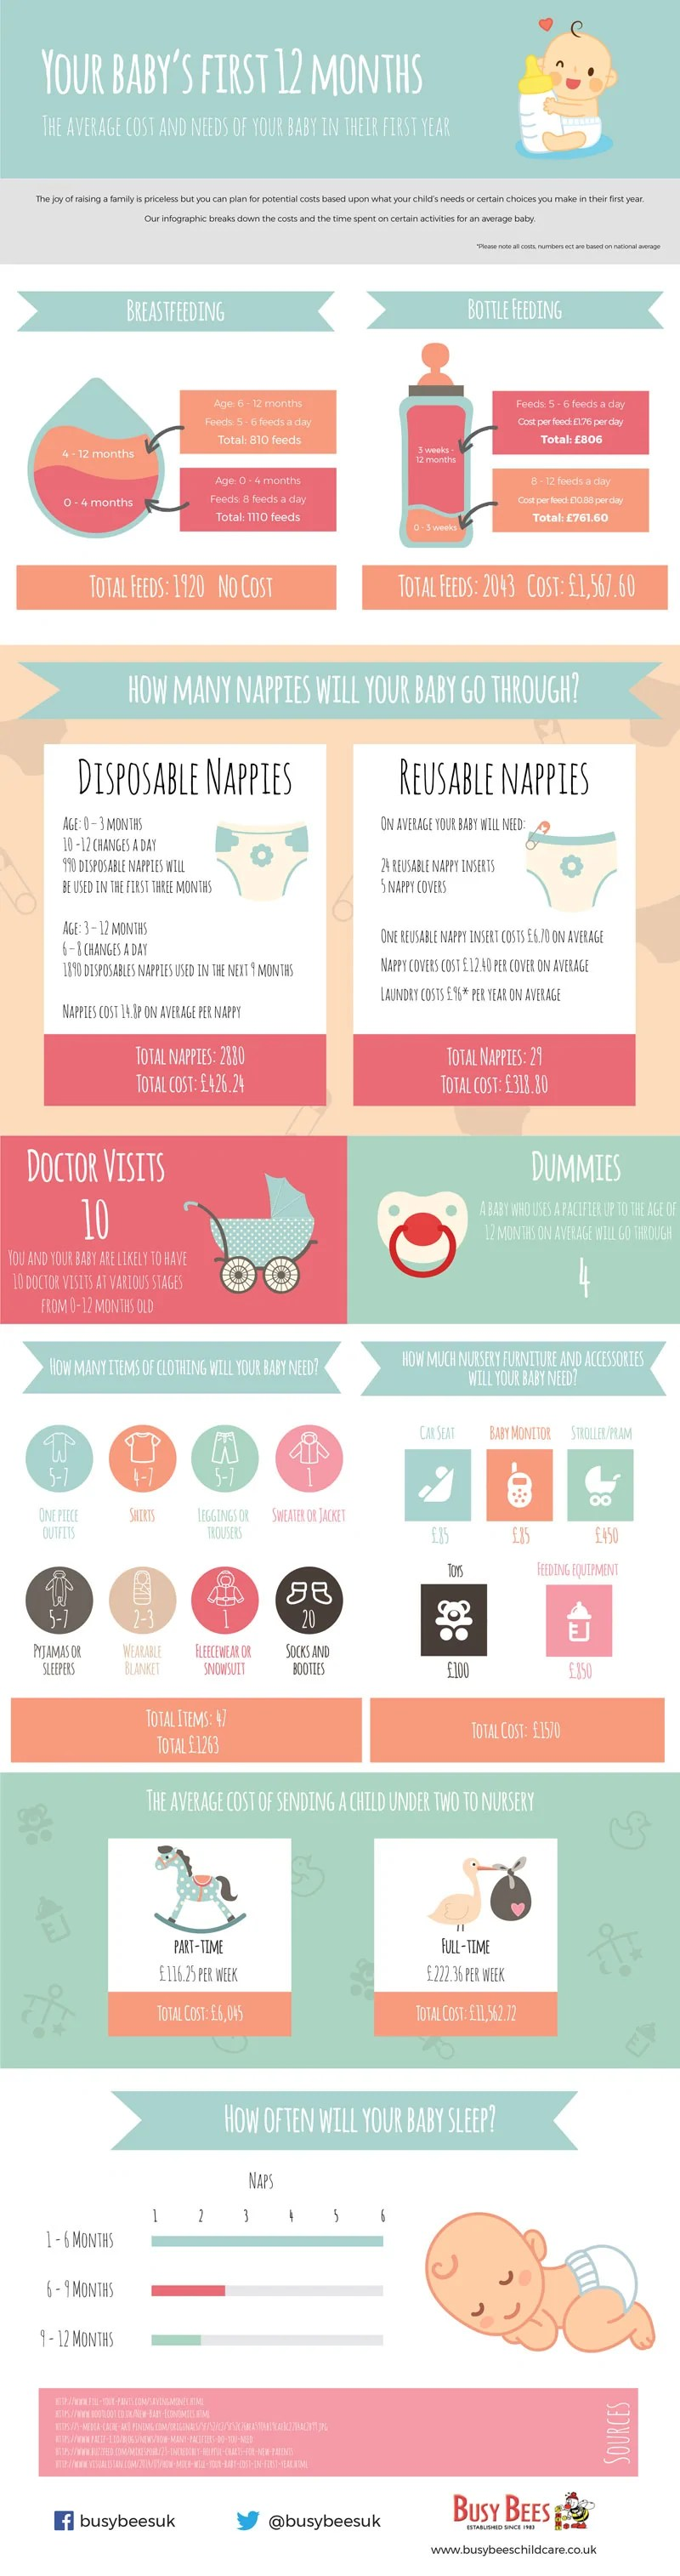 New Baby Infographic